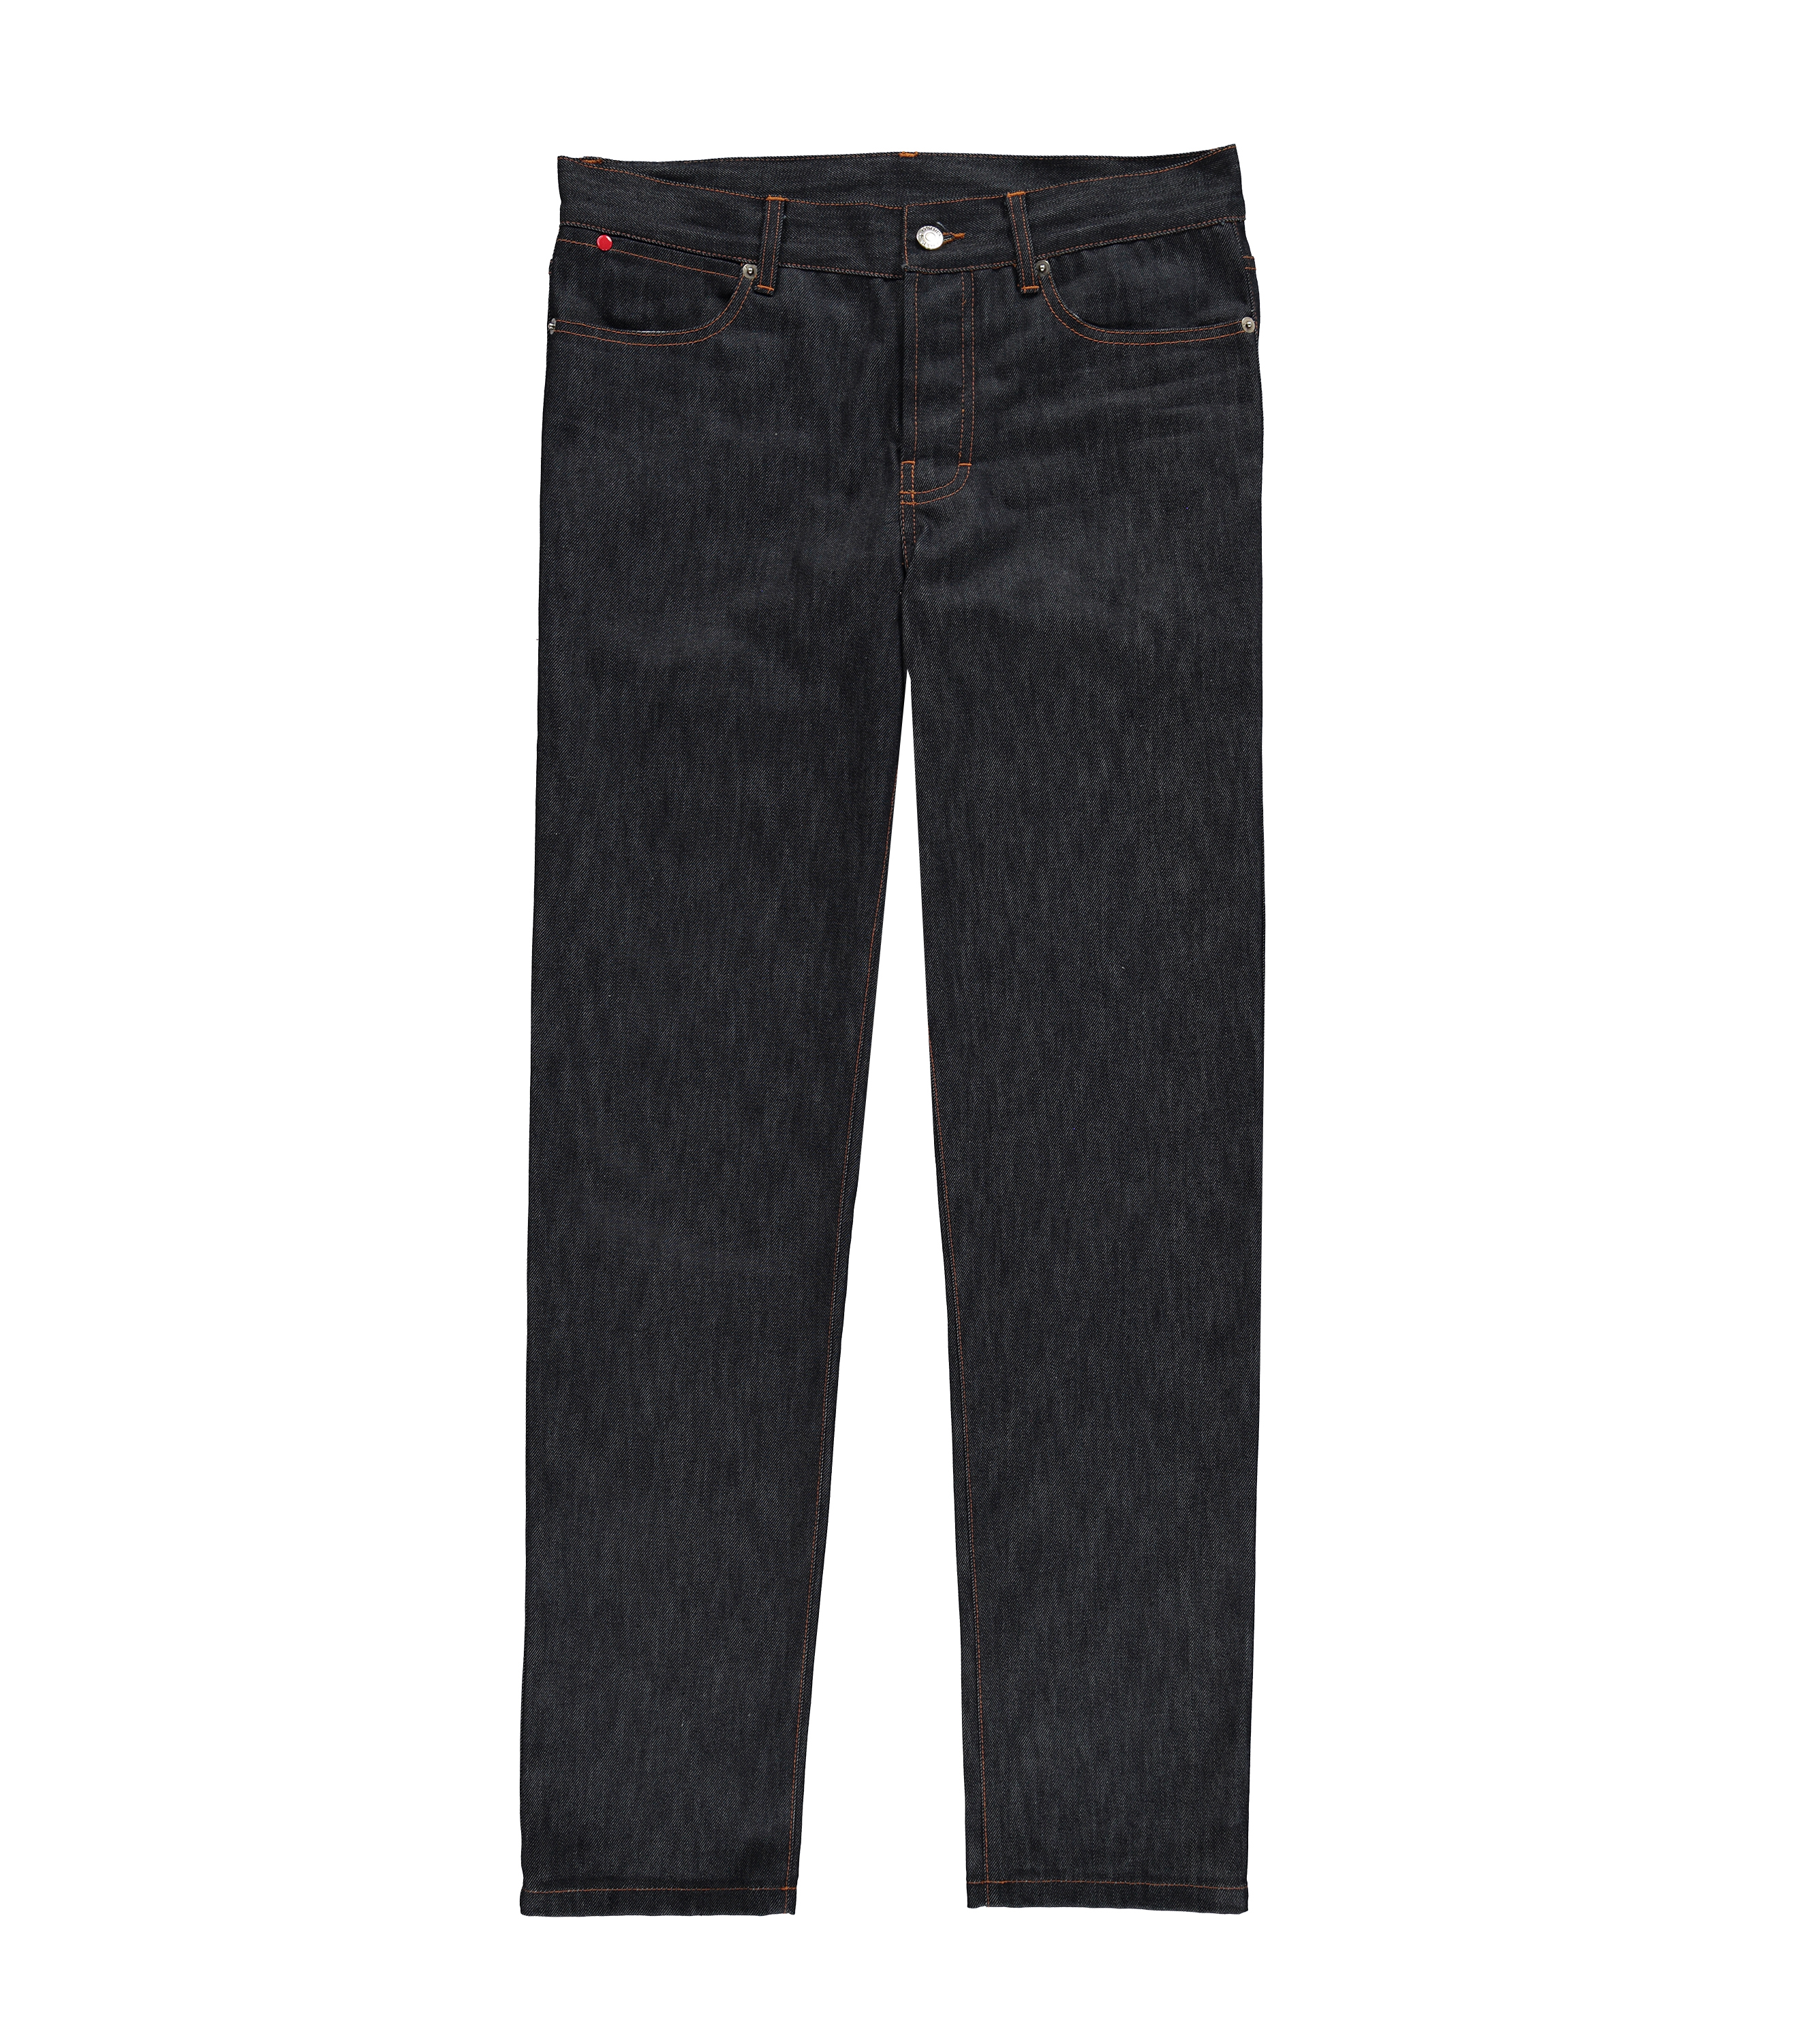 Pantalon GN. Denim - Brut